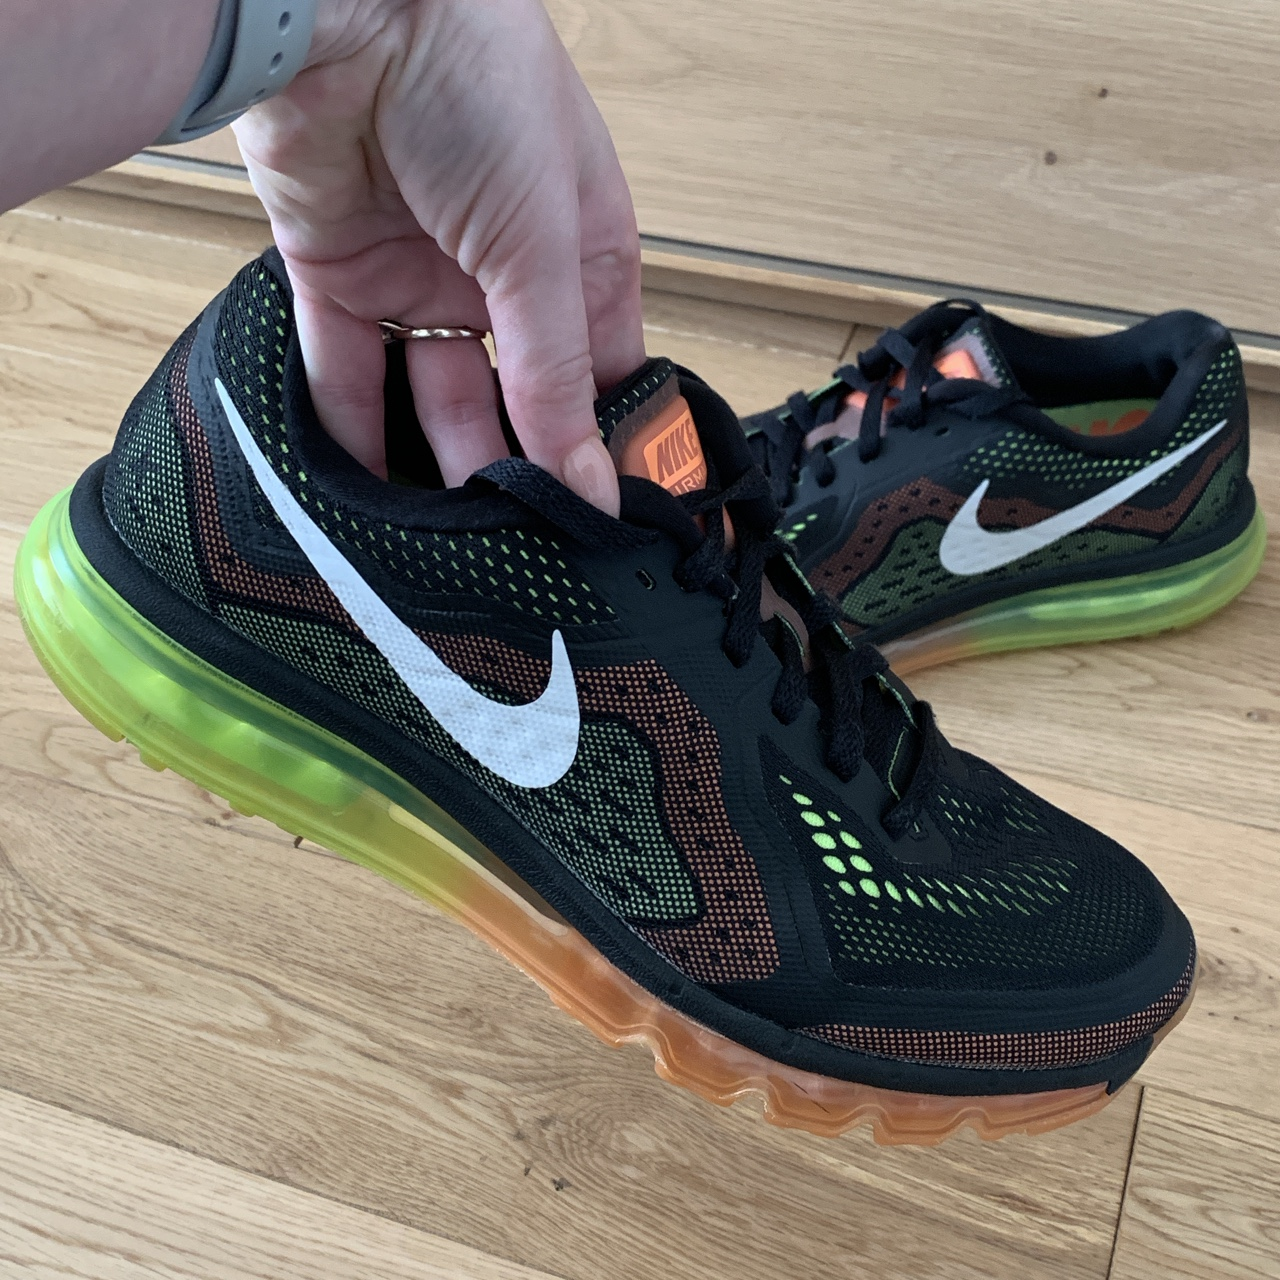 Details about Nike Air Max 2014 Men's Size 11